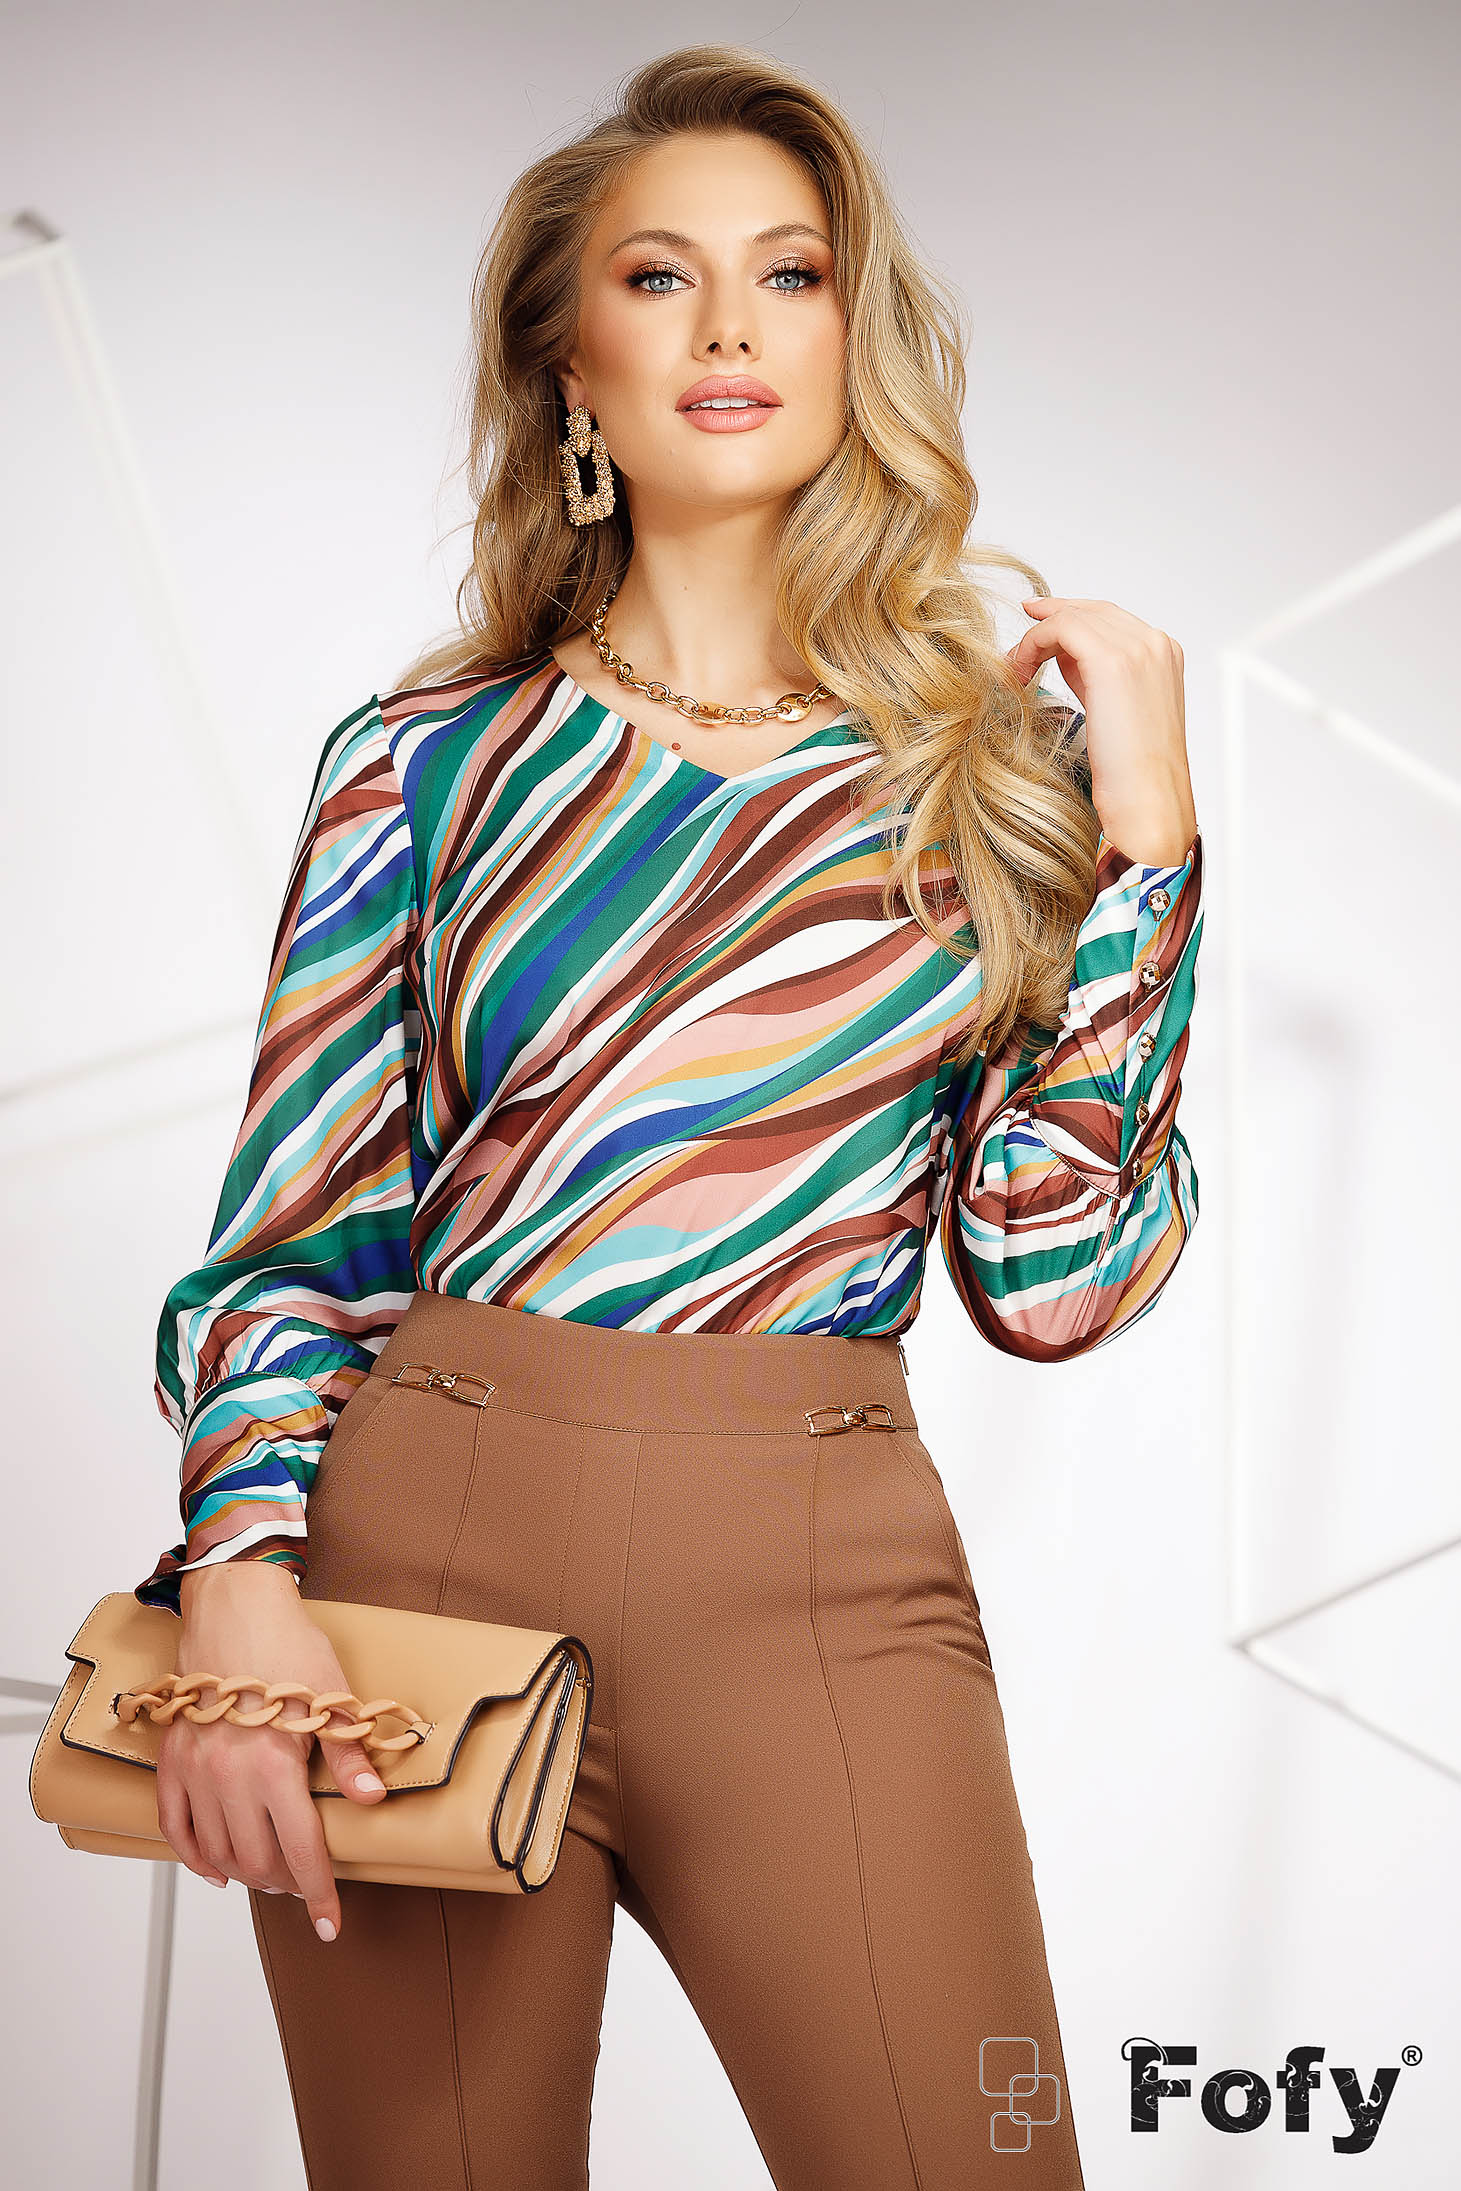 Women`s blouse thin fabric loose fit nonelastic fabric casual with graphic details